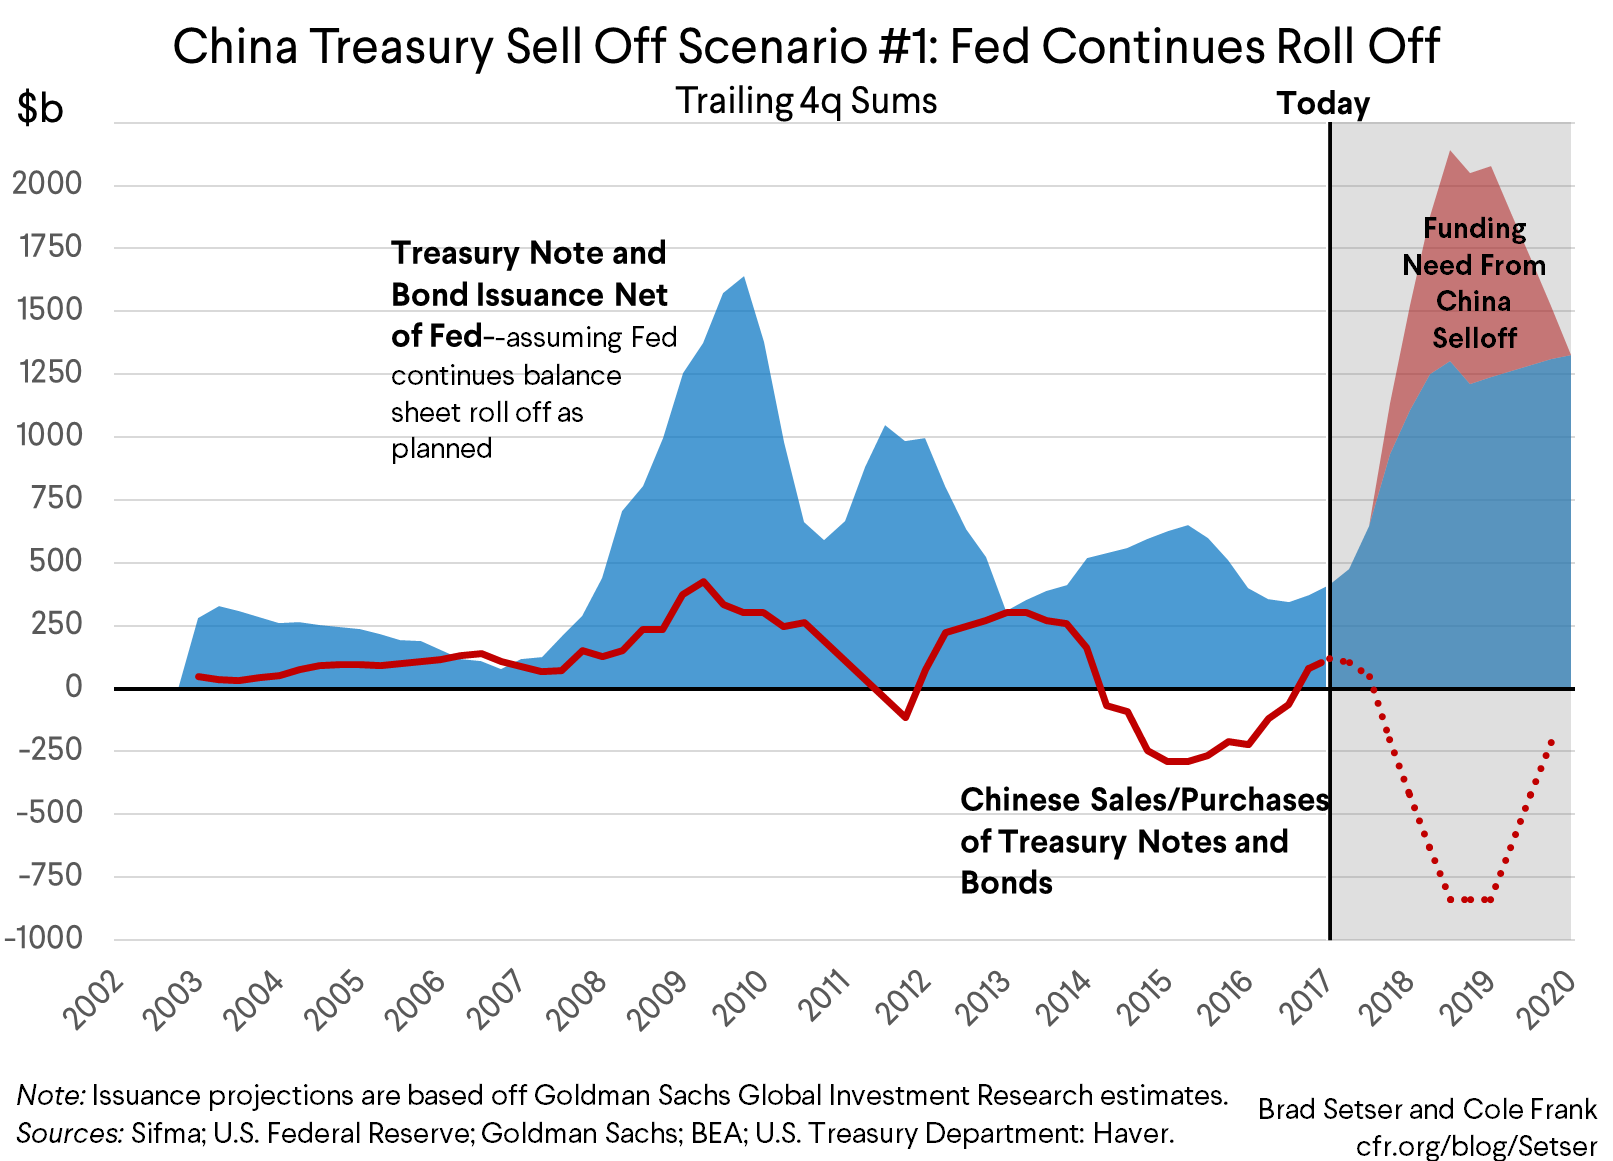 What Would Hen If China Started Ing Off Its Treasury Portfolio